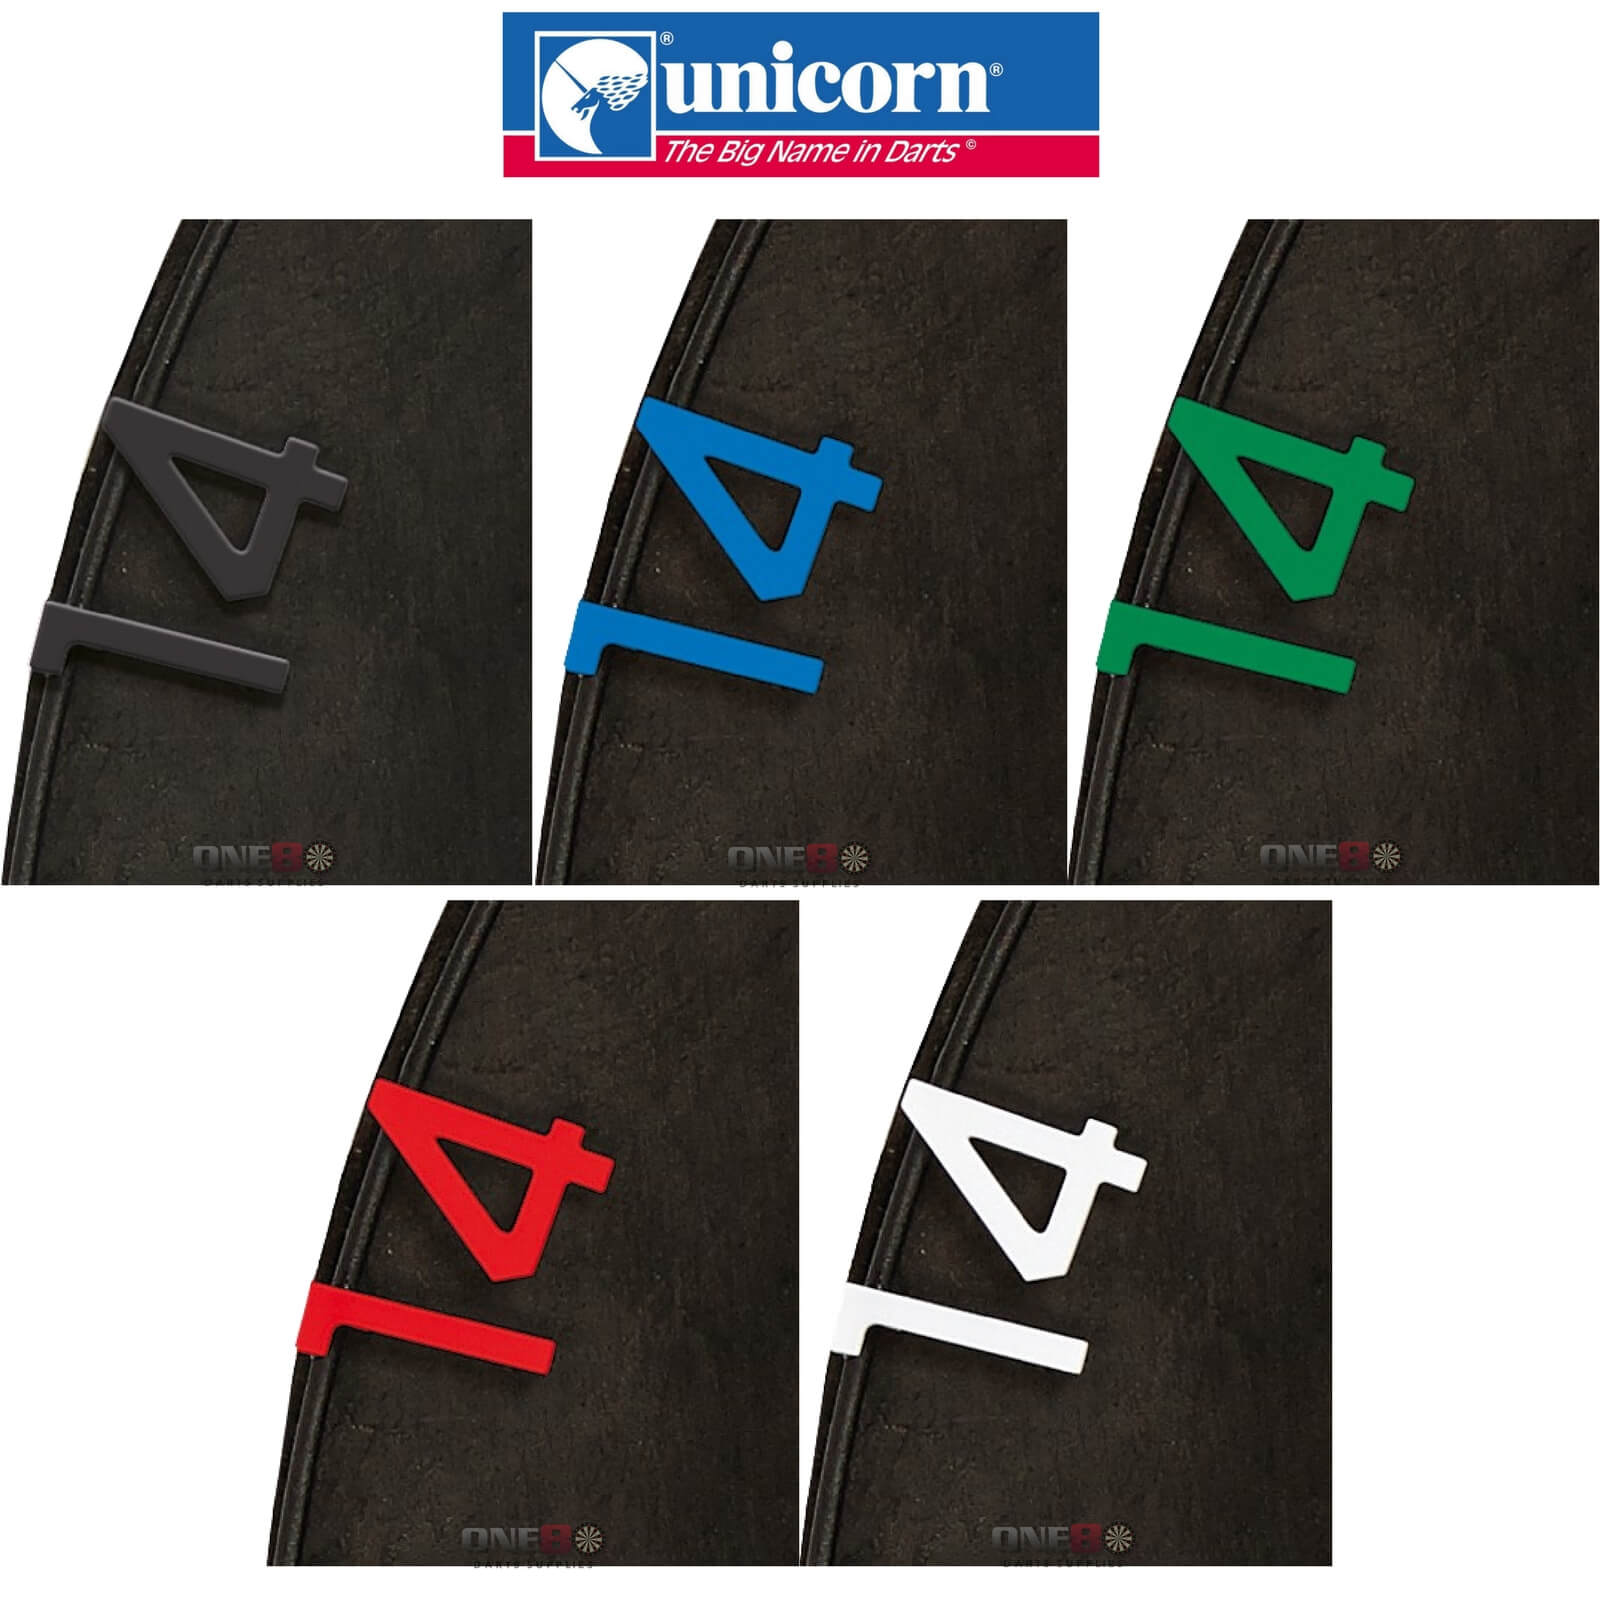 Dartboard Accessories - Unicorn - Eclipse HD2 Dartboard Spare Number Set - 1 to 20